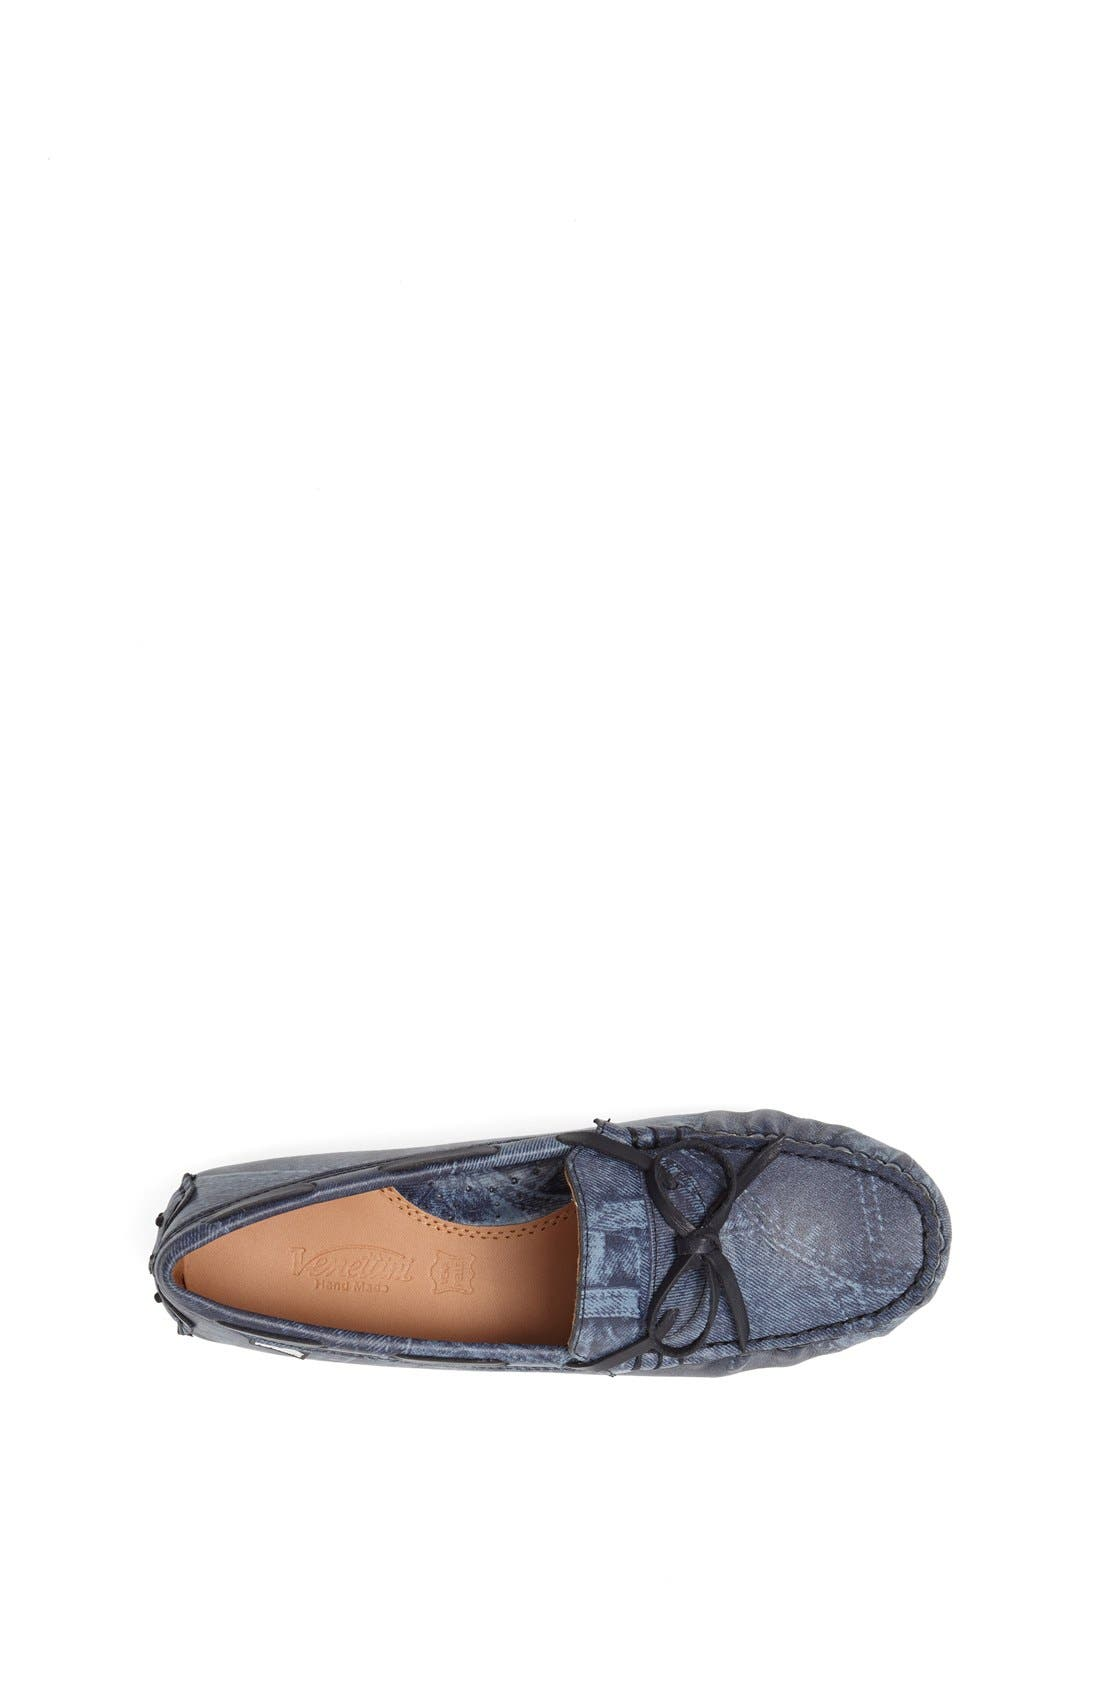 Alternate Image 3  - Venettini 'Morgan' Loafer (Toddler, Little Kid & Big Kid)